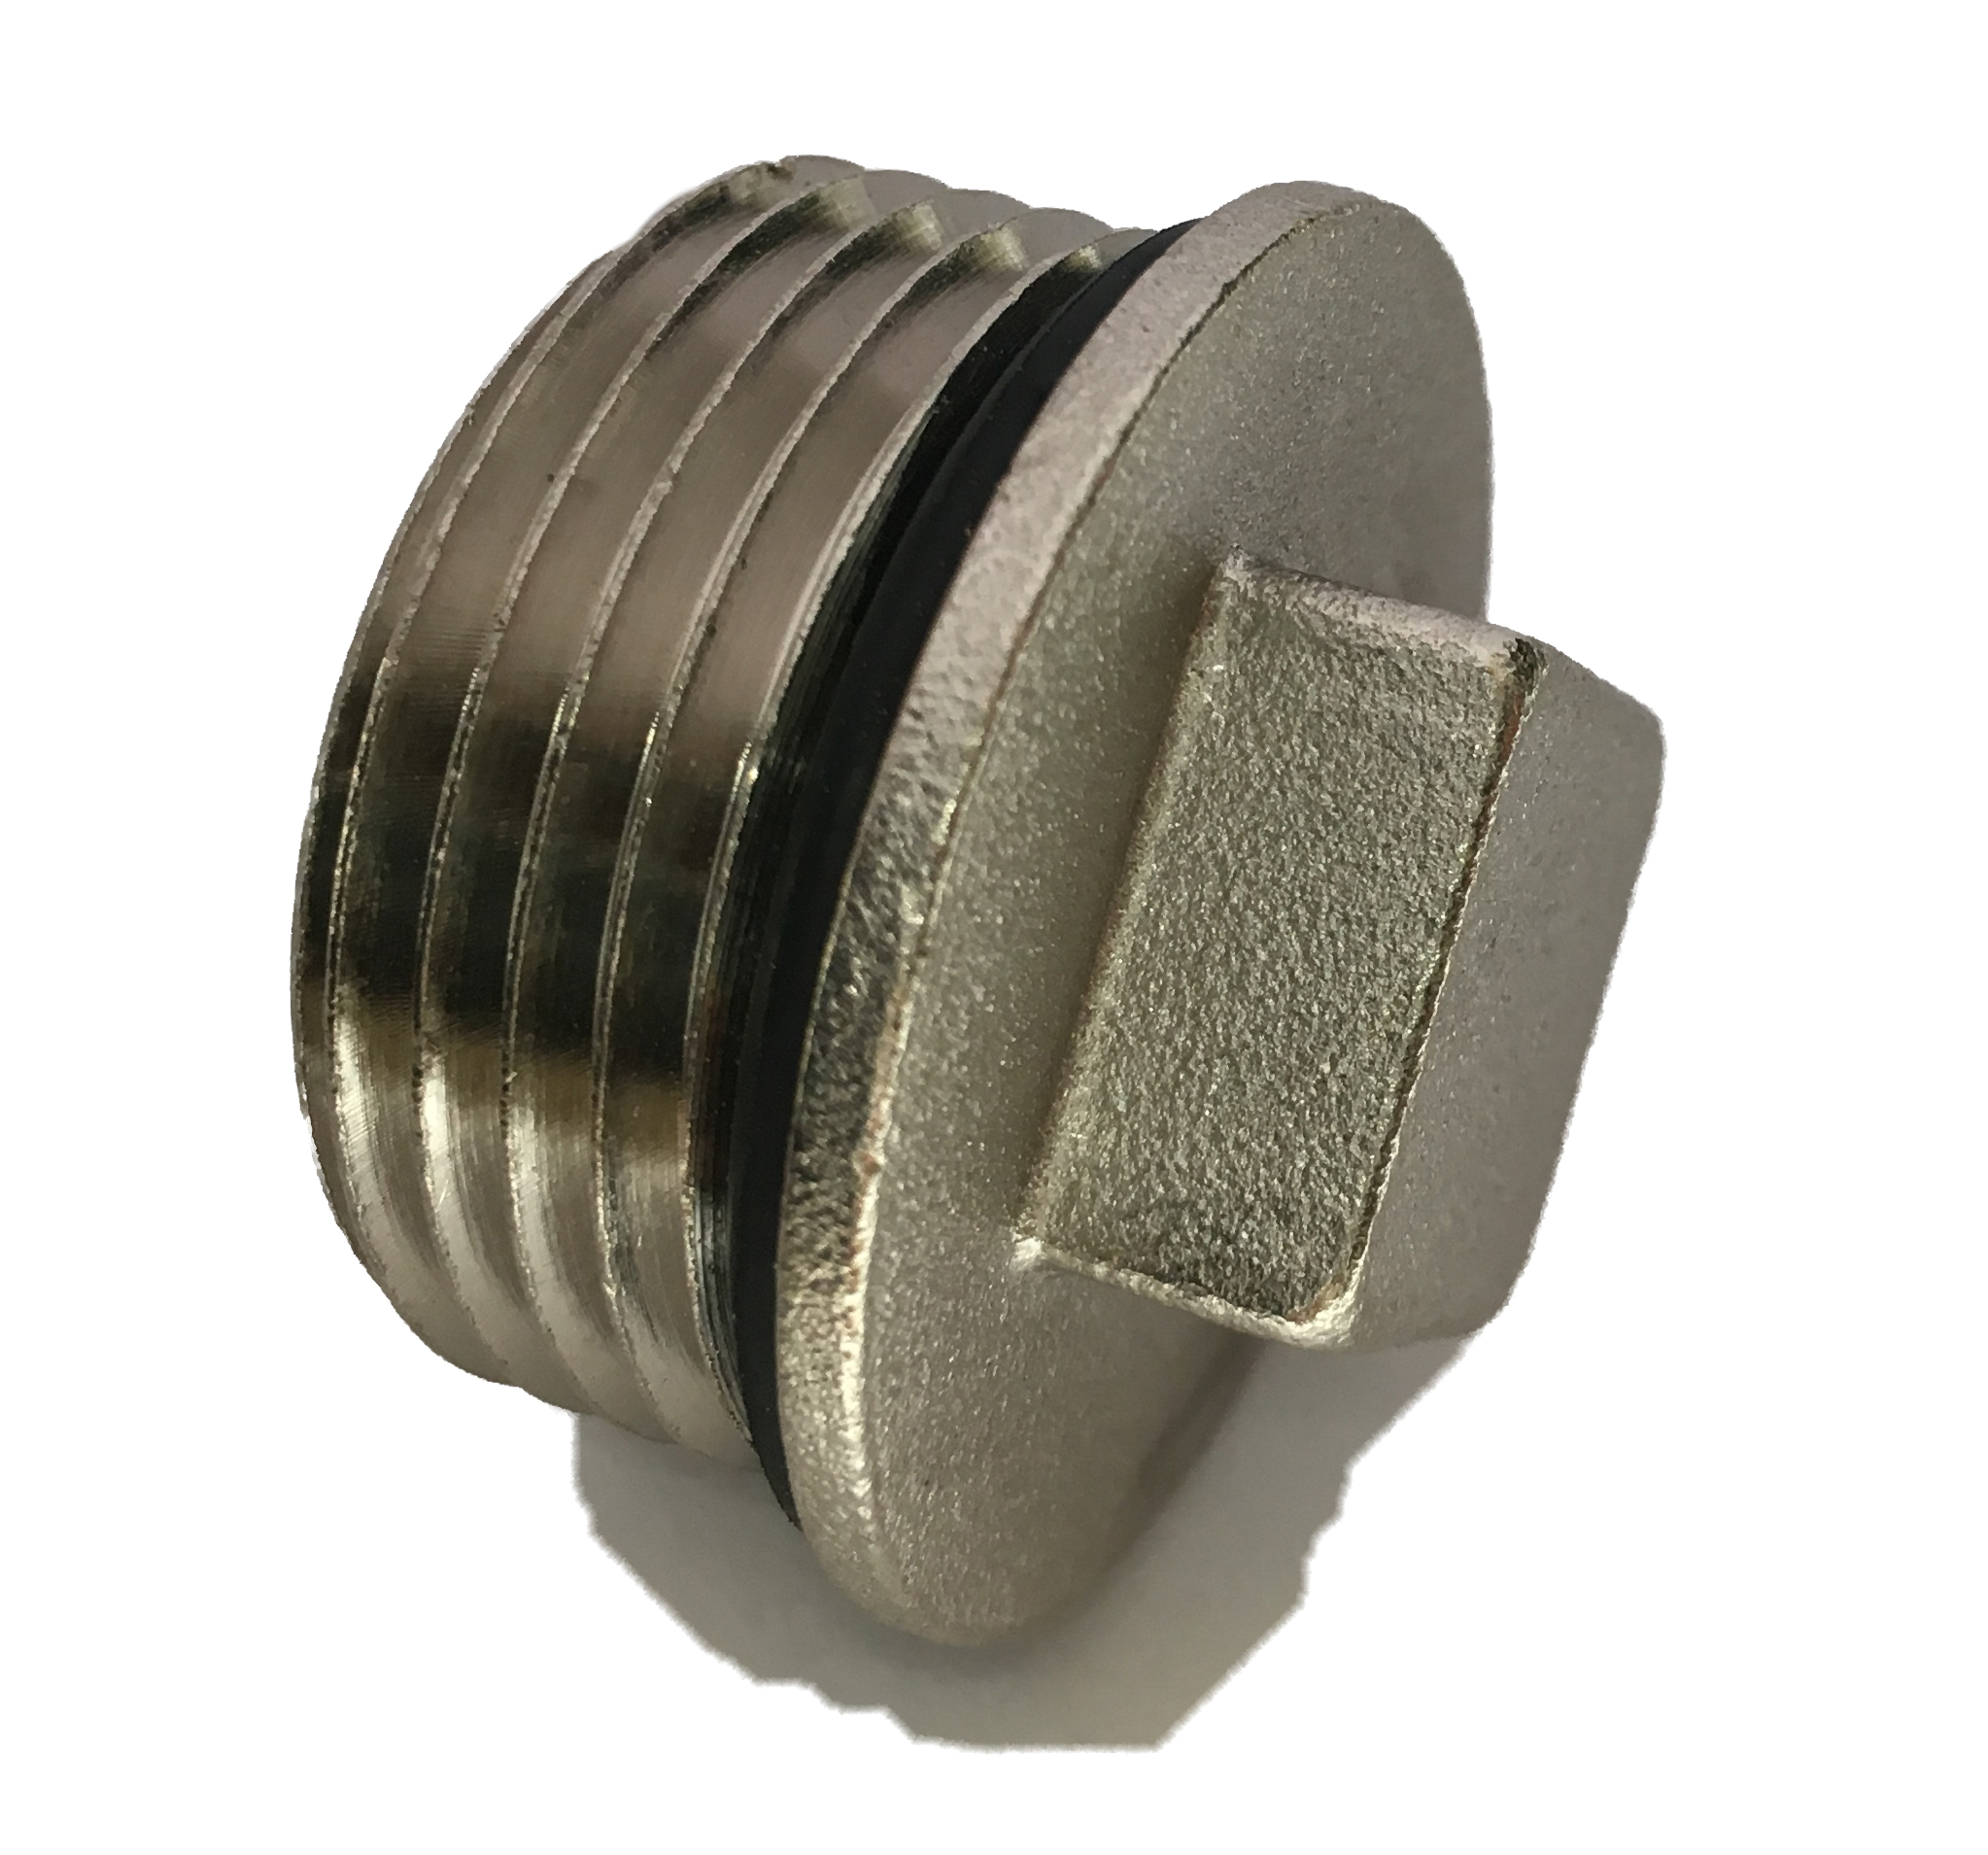 Brass Male Plug 4/4M w/ oring Nickelplated